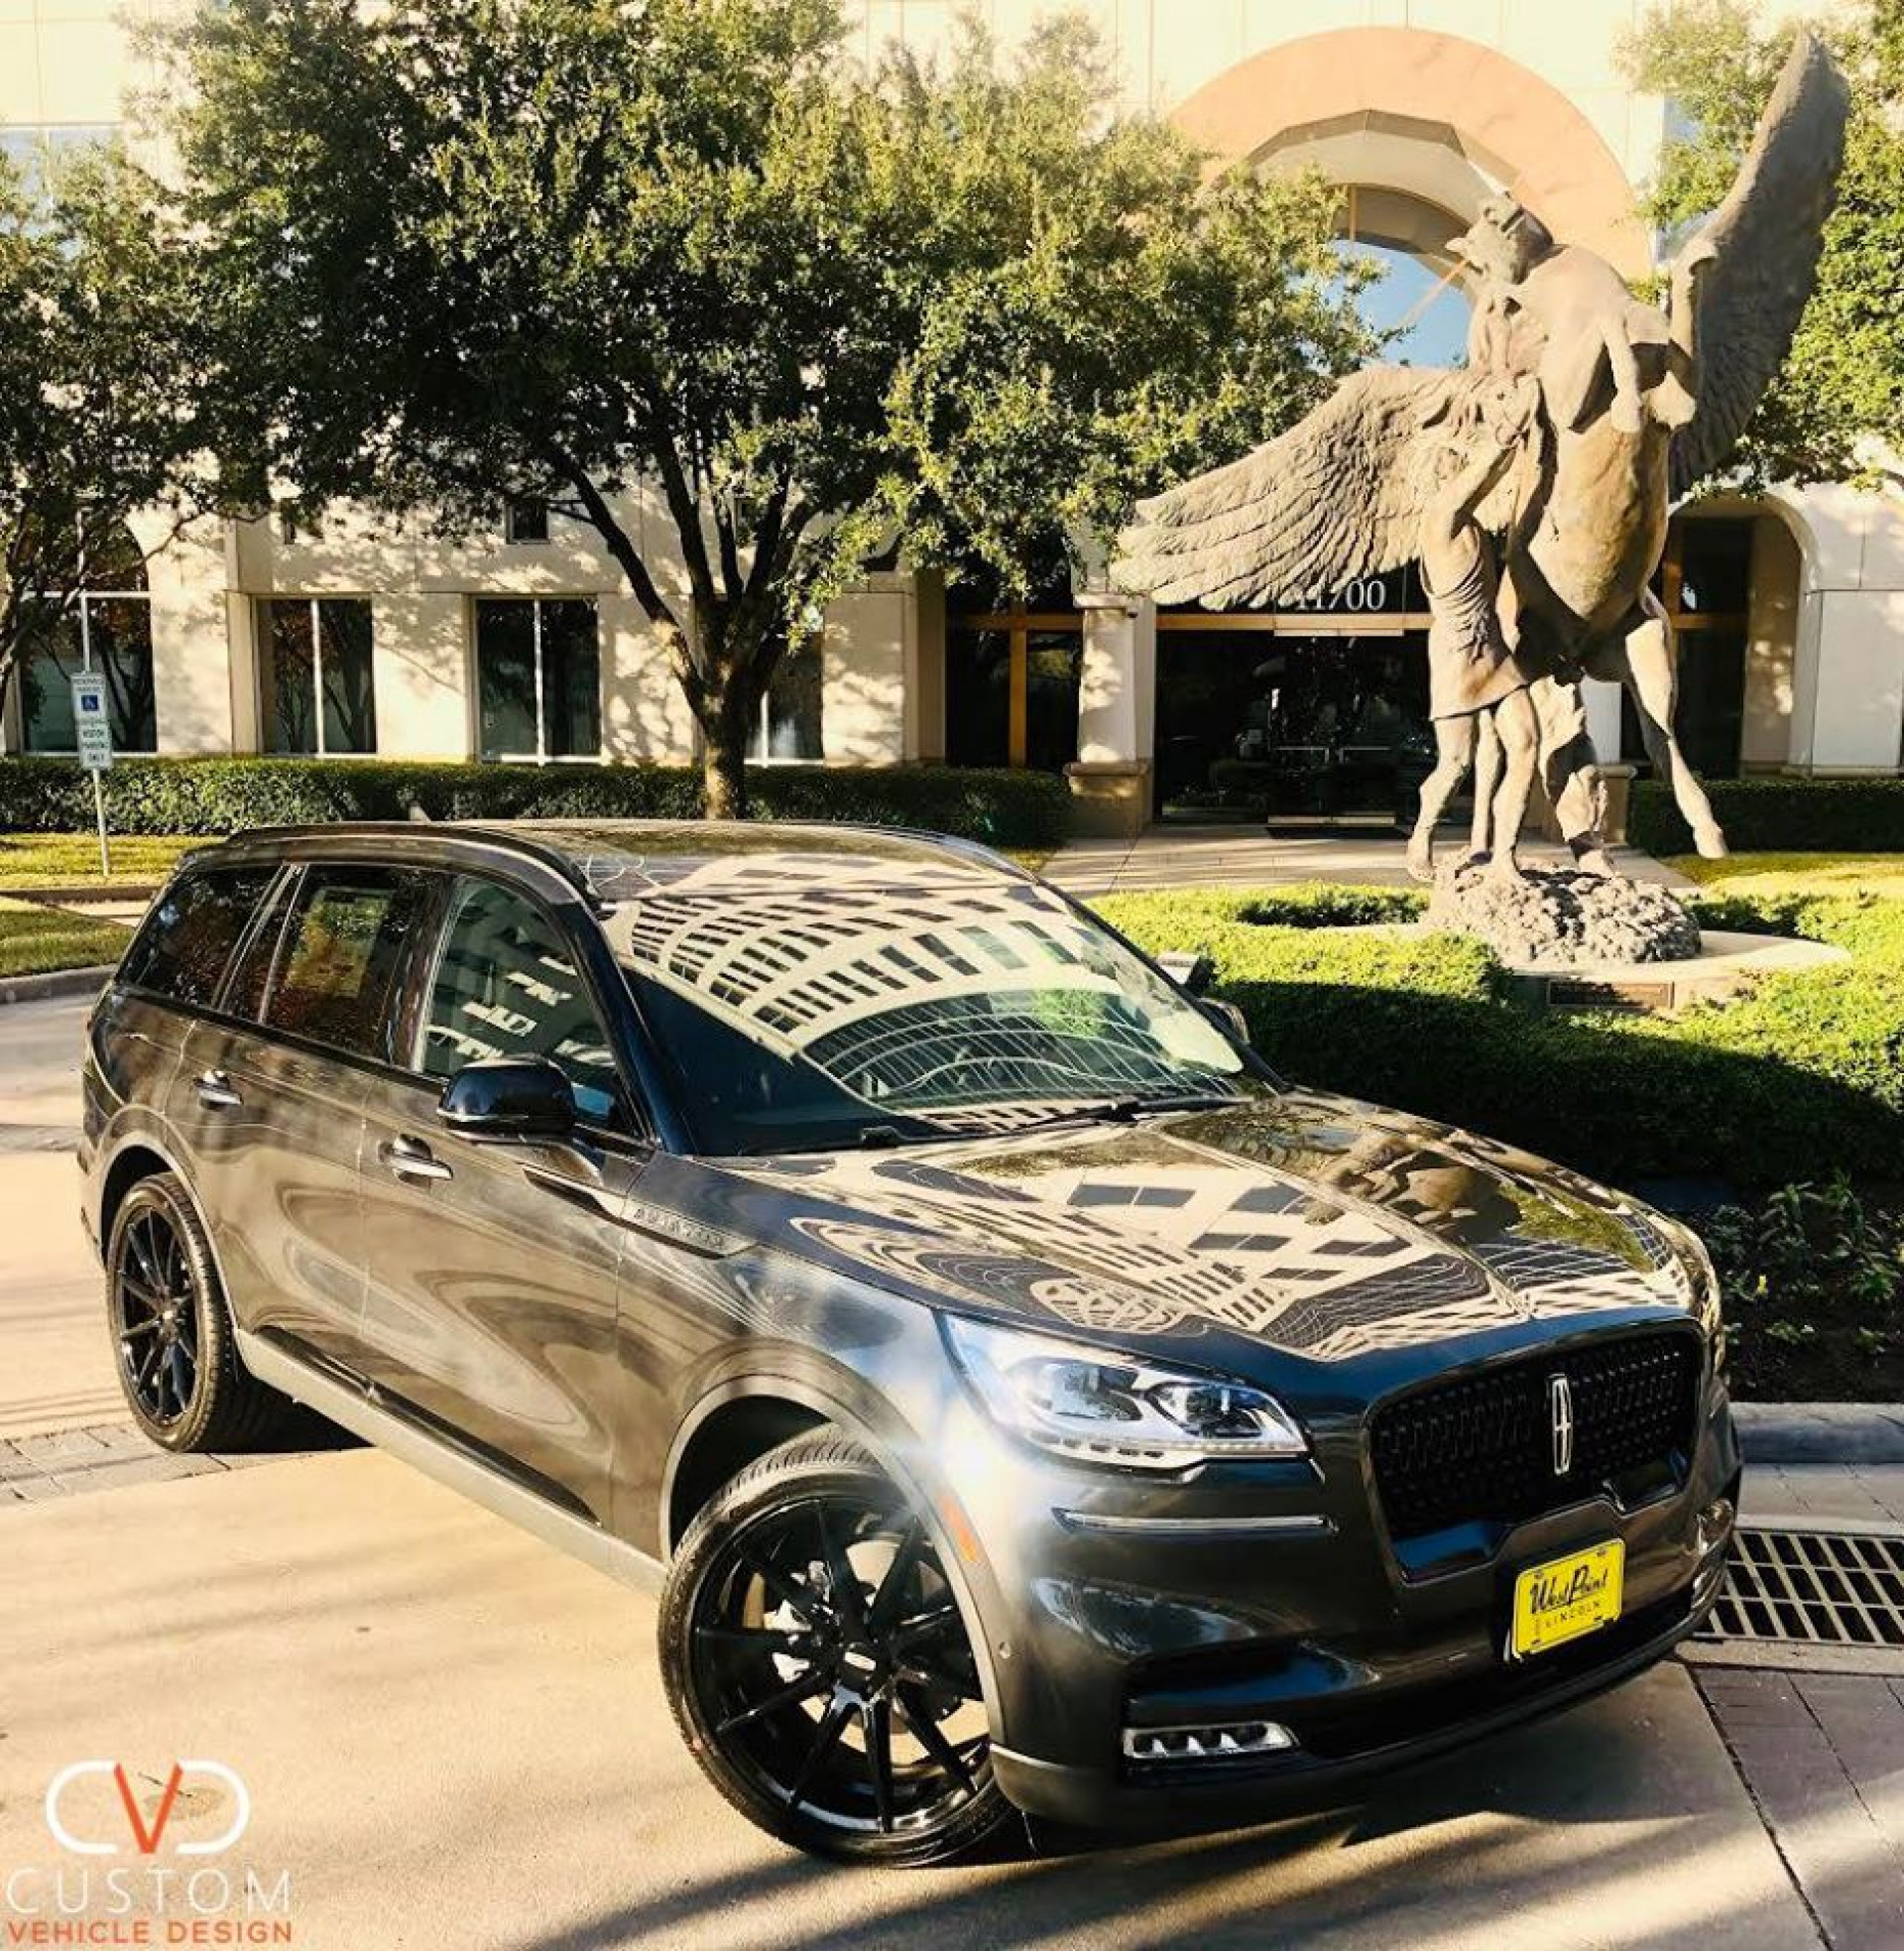 2020 Lincoln Aviator with a Custom Blackout Package (22inch Clypse Gloss Black Wheels)